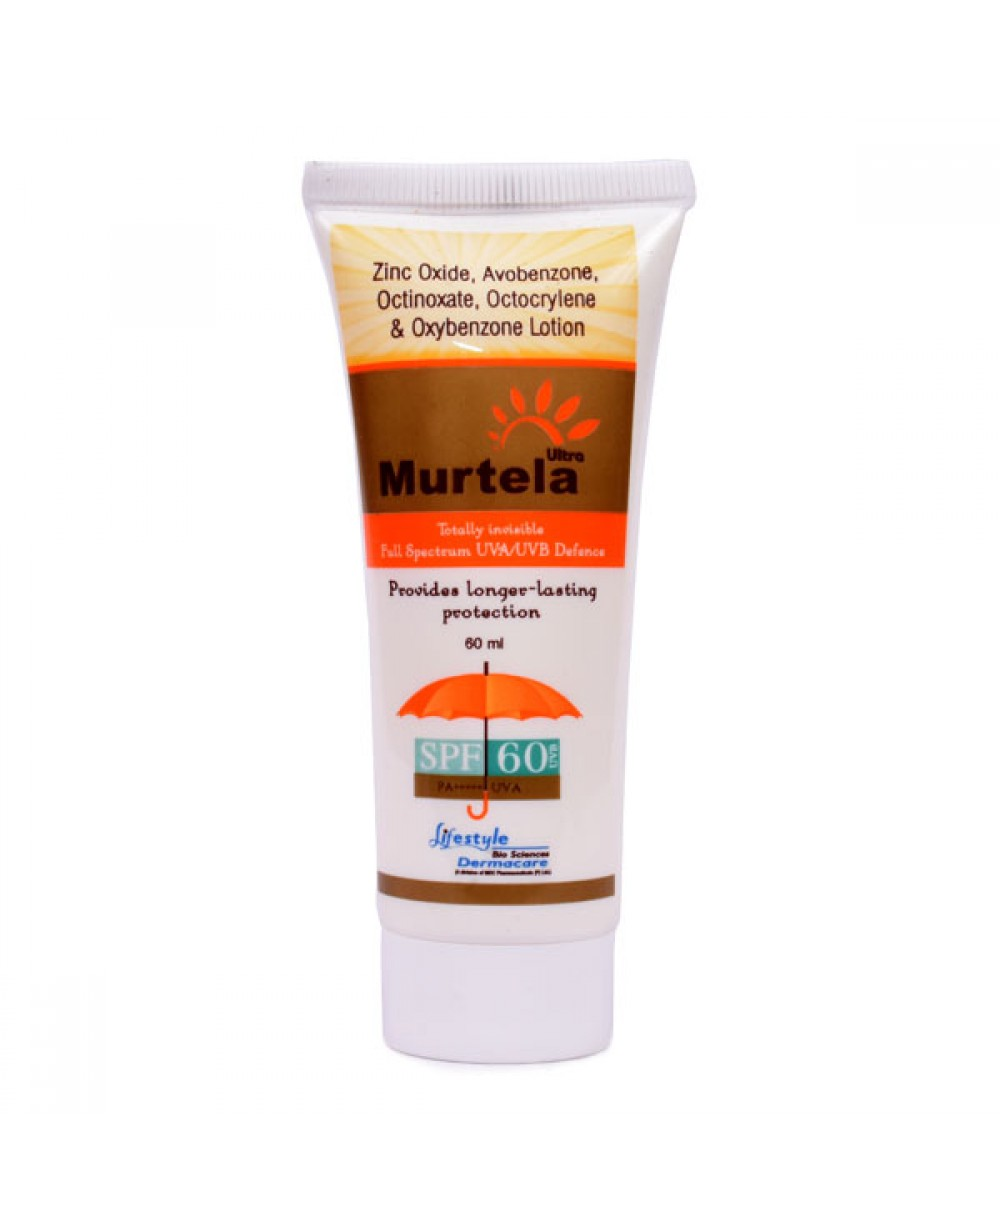 Murtela Ultra Sunscreen Lotion - 60ml